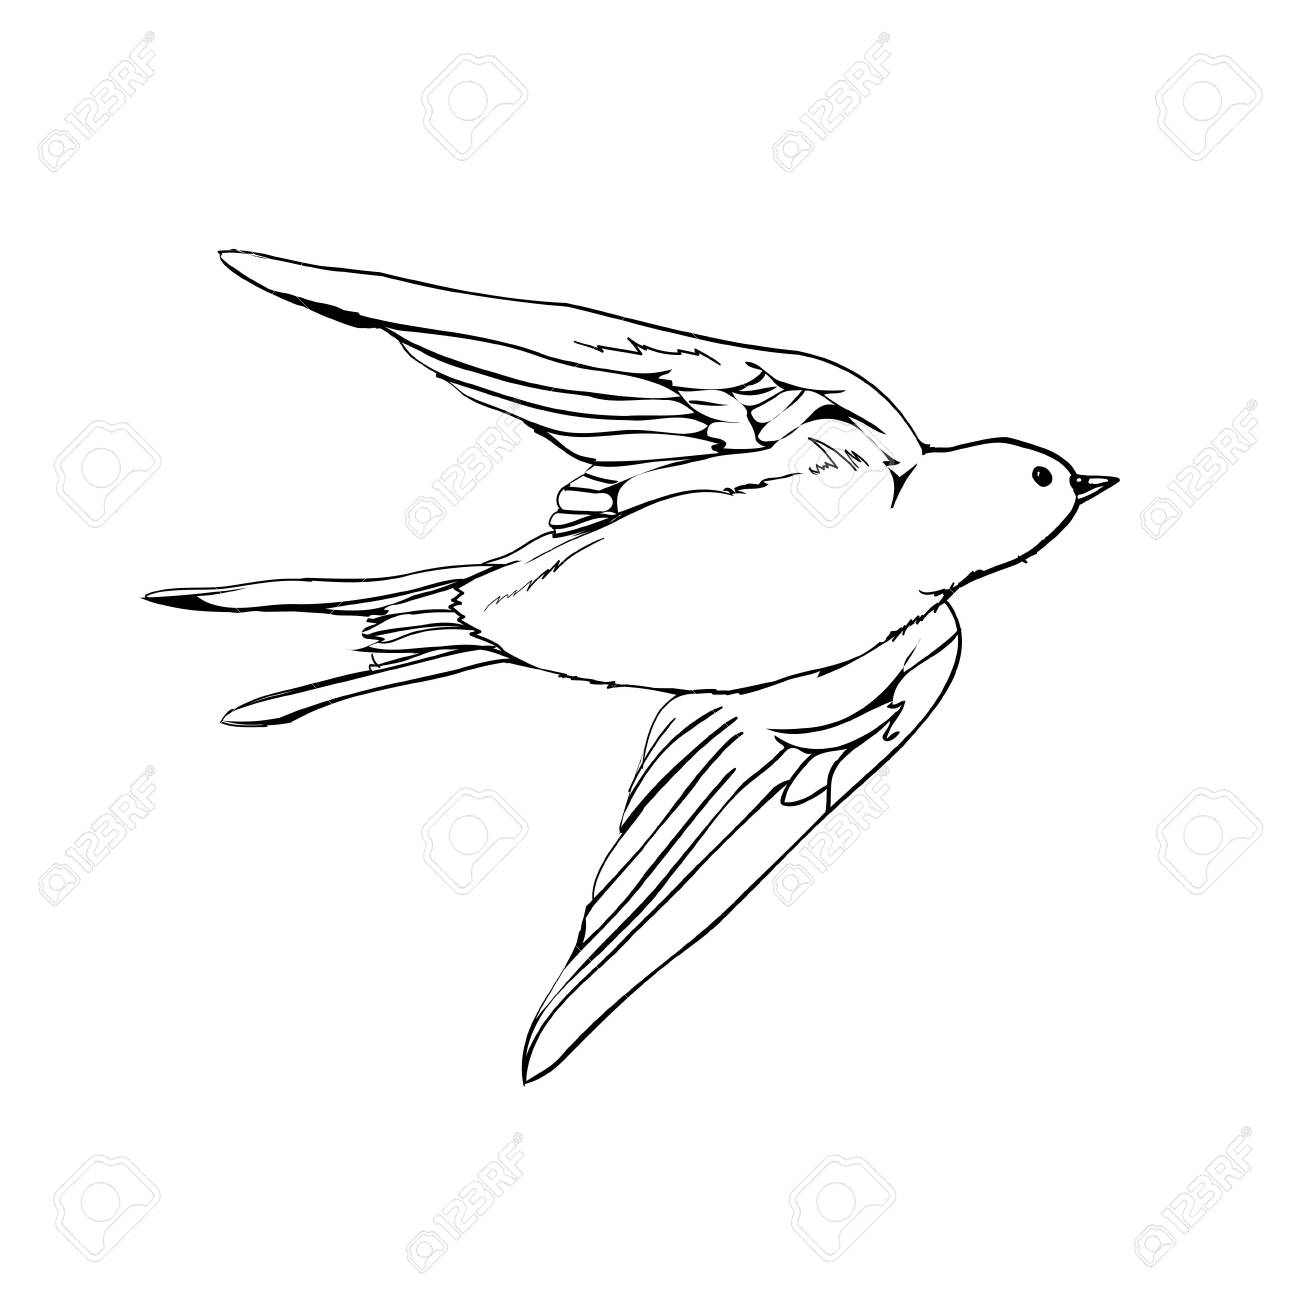 Vector swallows vector drawing of a series of monochrome sketches birds